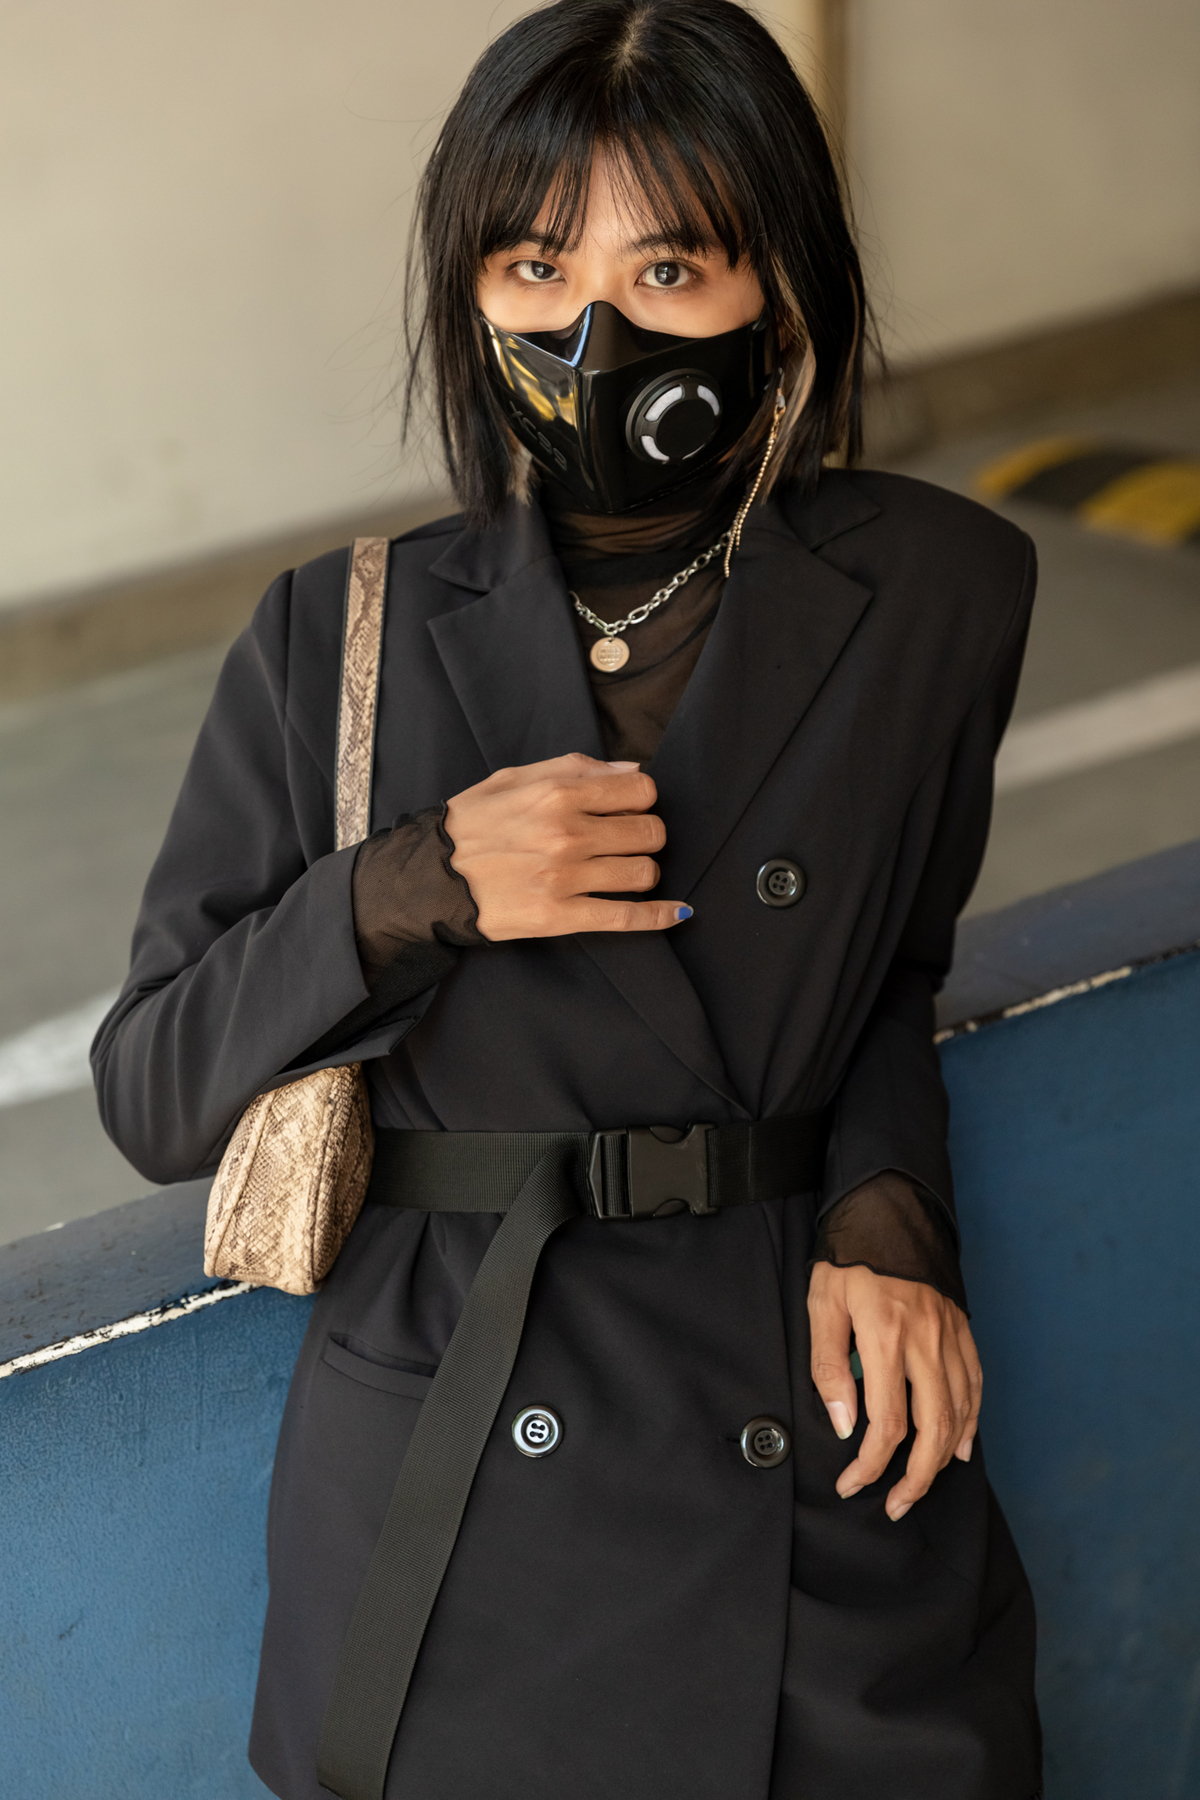 Saigon fashionistas shine in costumes that well matched with COVID-19 accessories